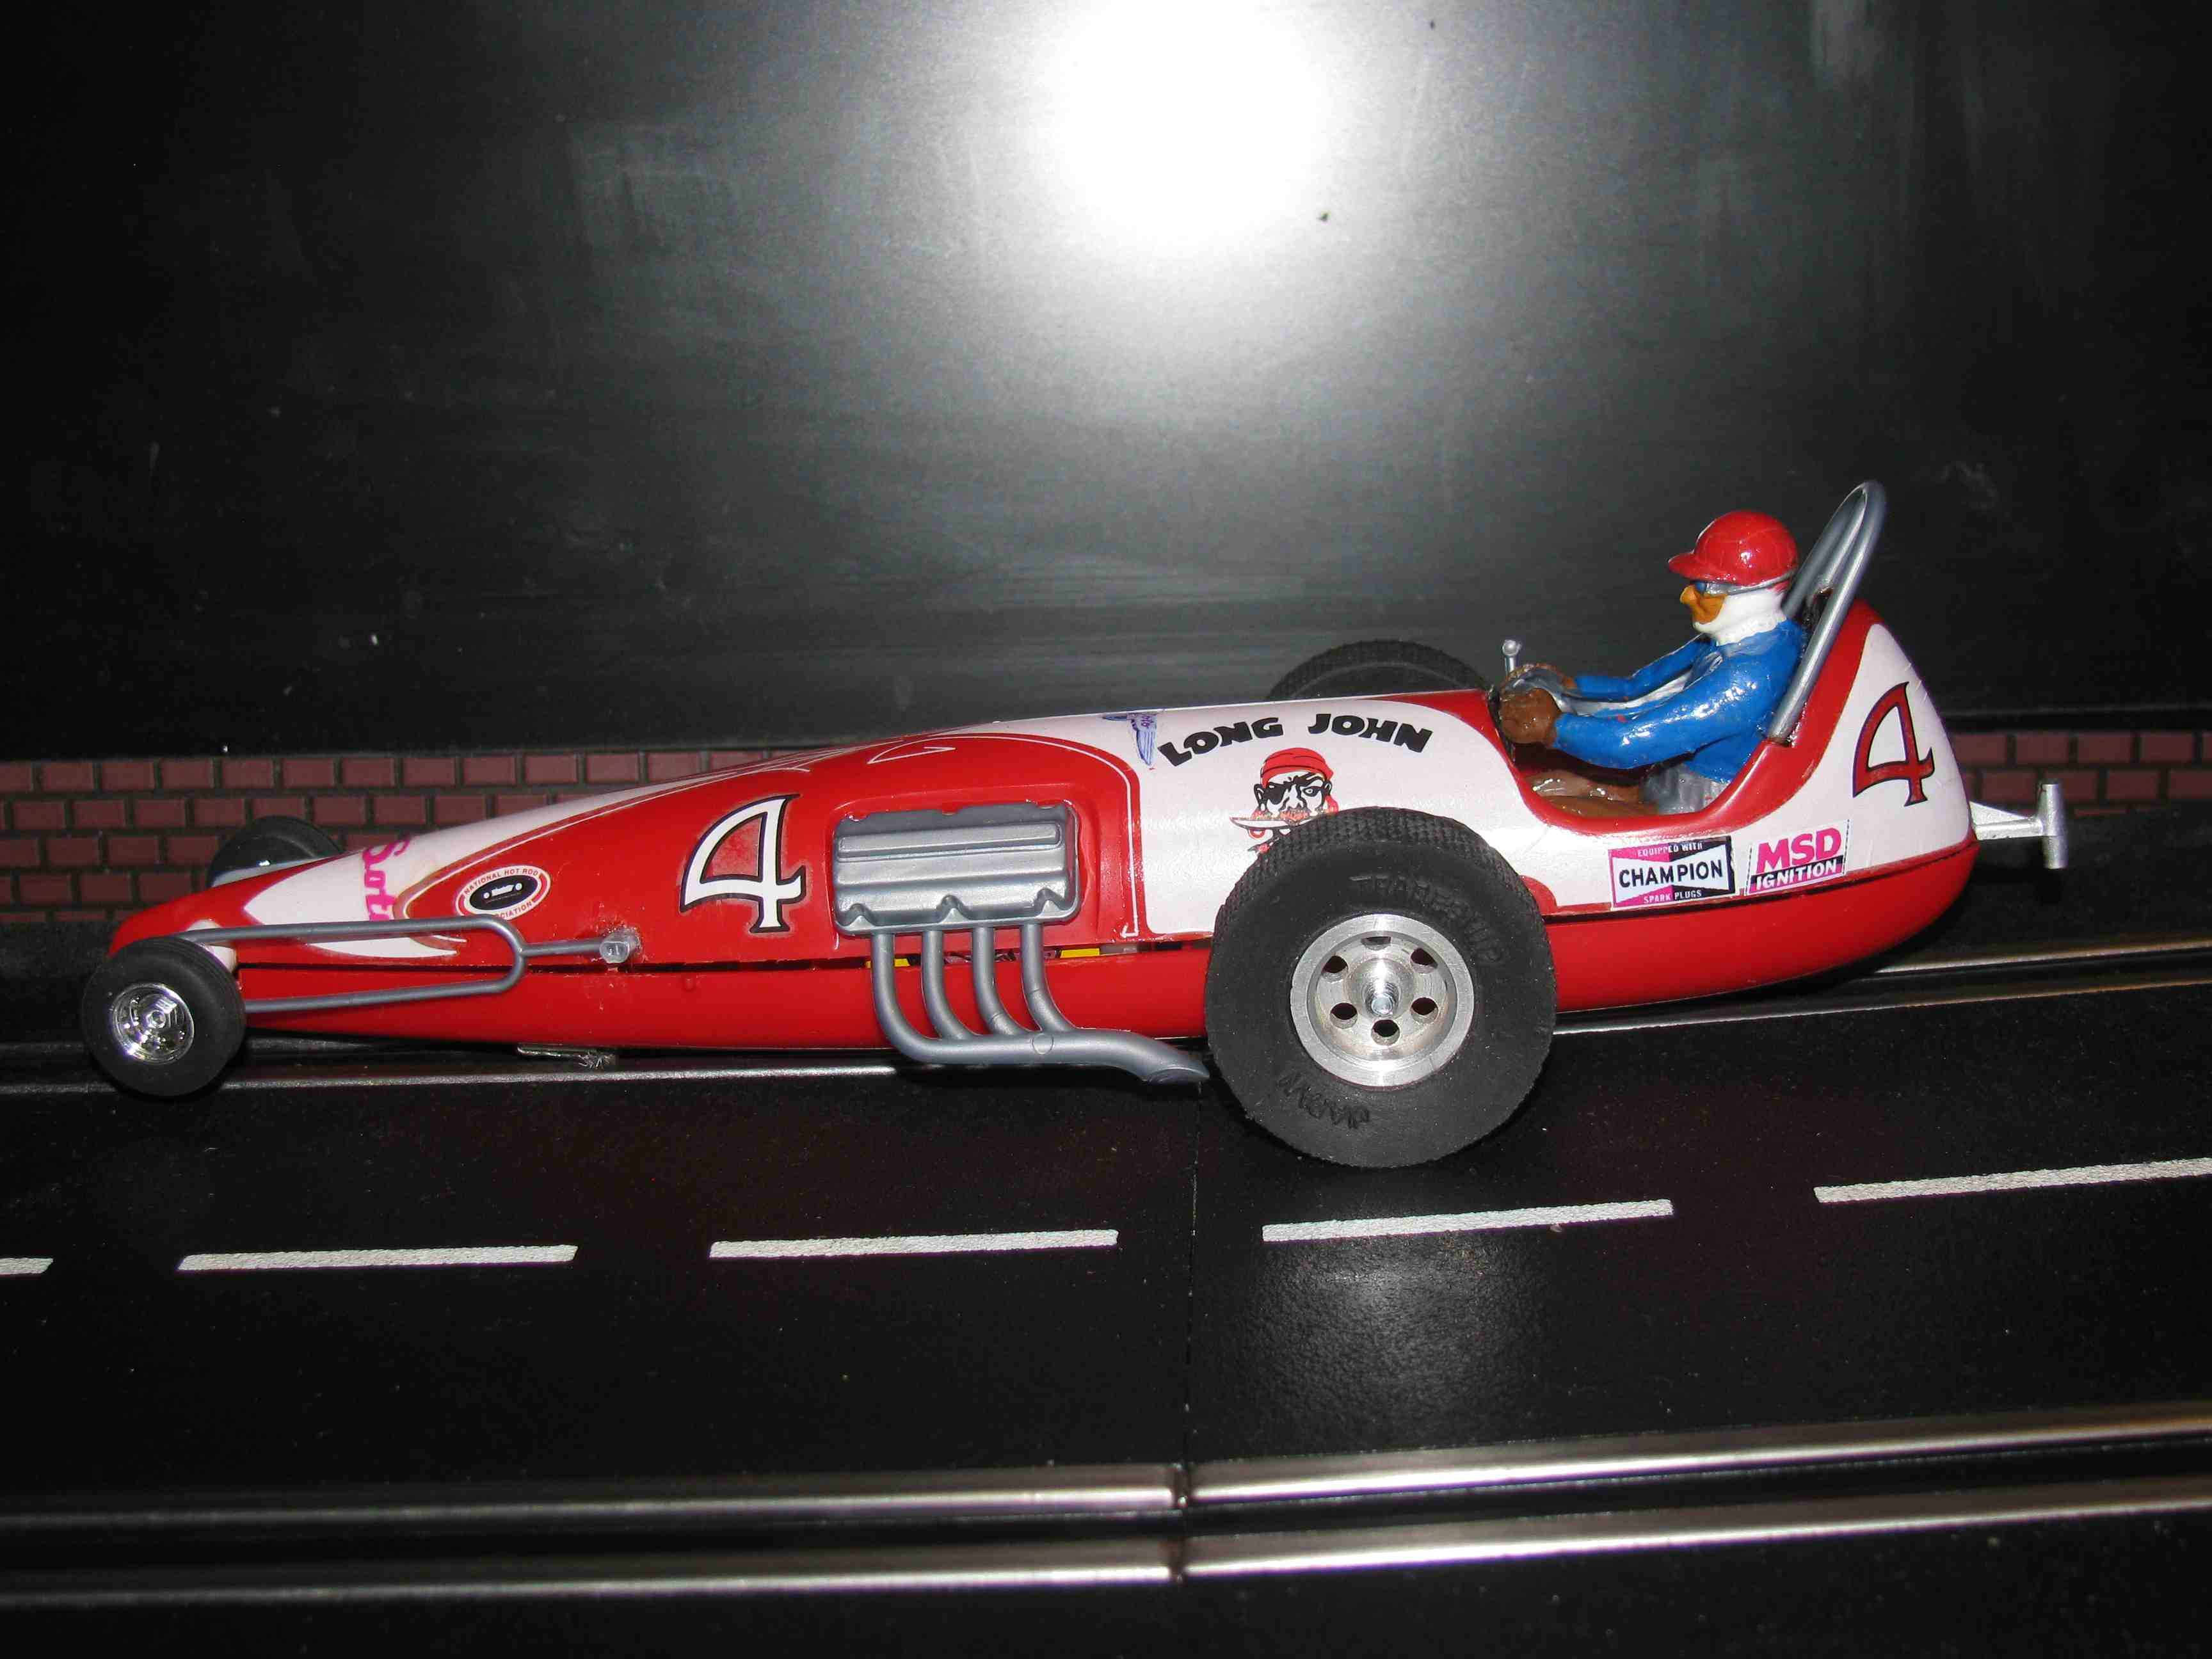 *SOLD* Vintage Monogram Revell Long John Dragster Slot Car 1/32 Scale – Red – Car #4 VIII